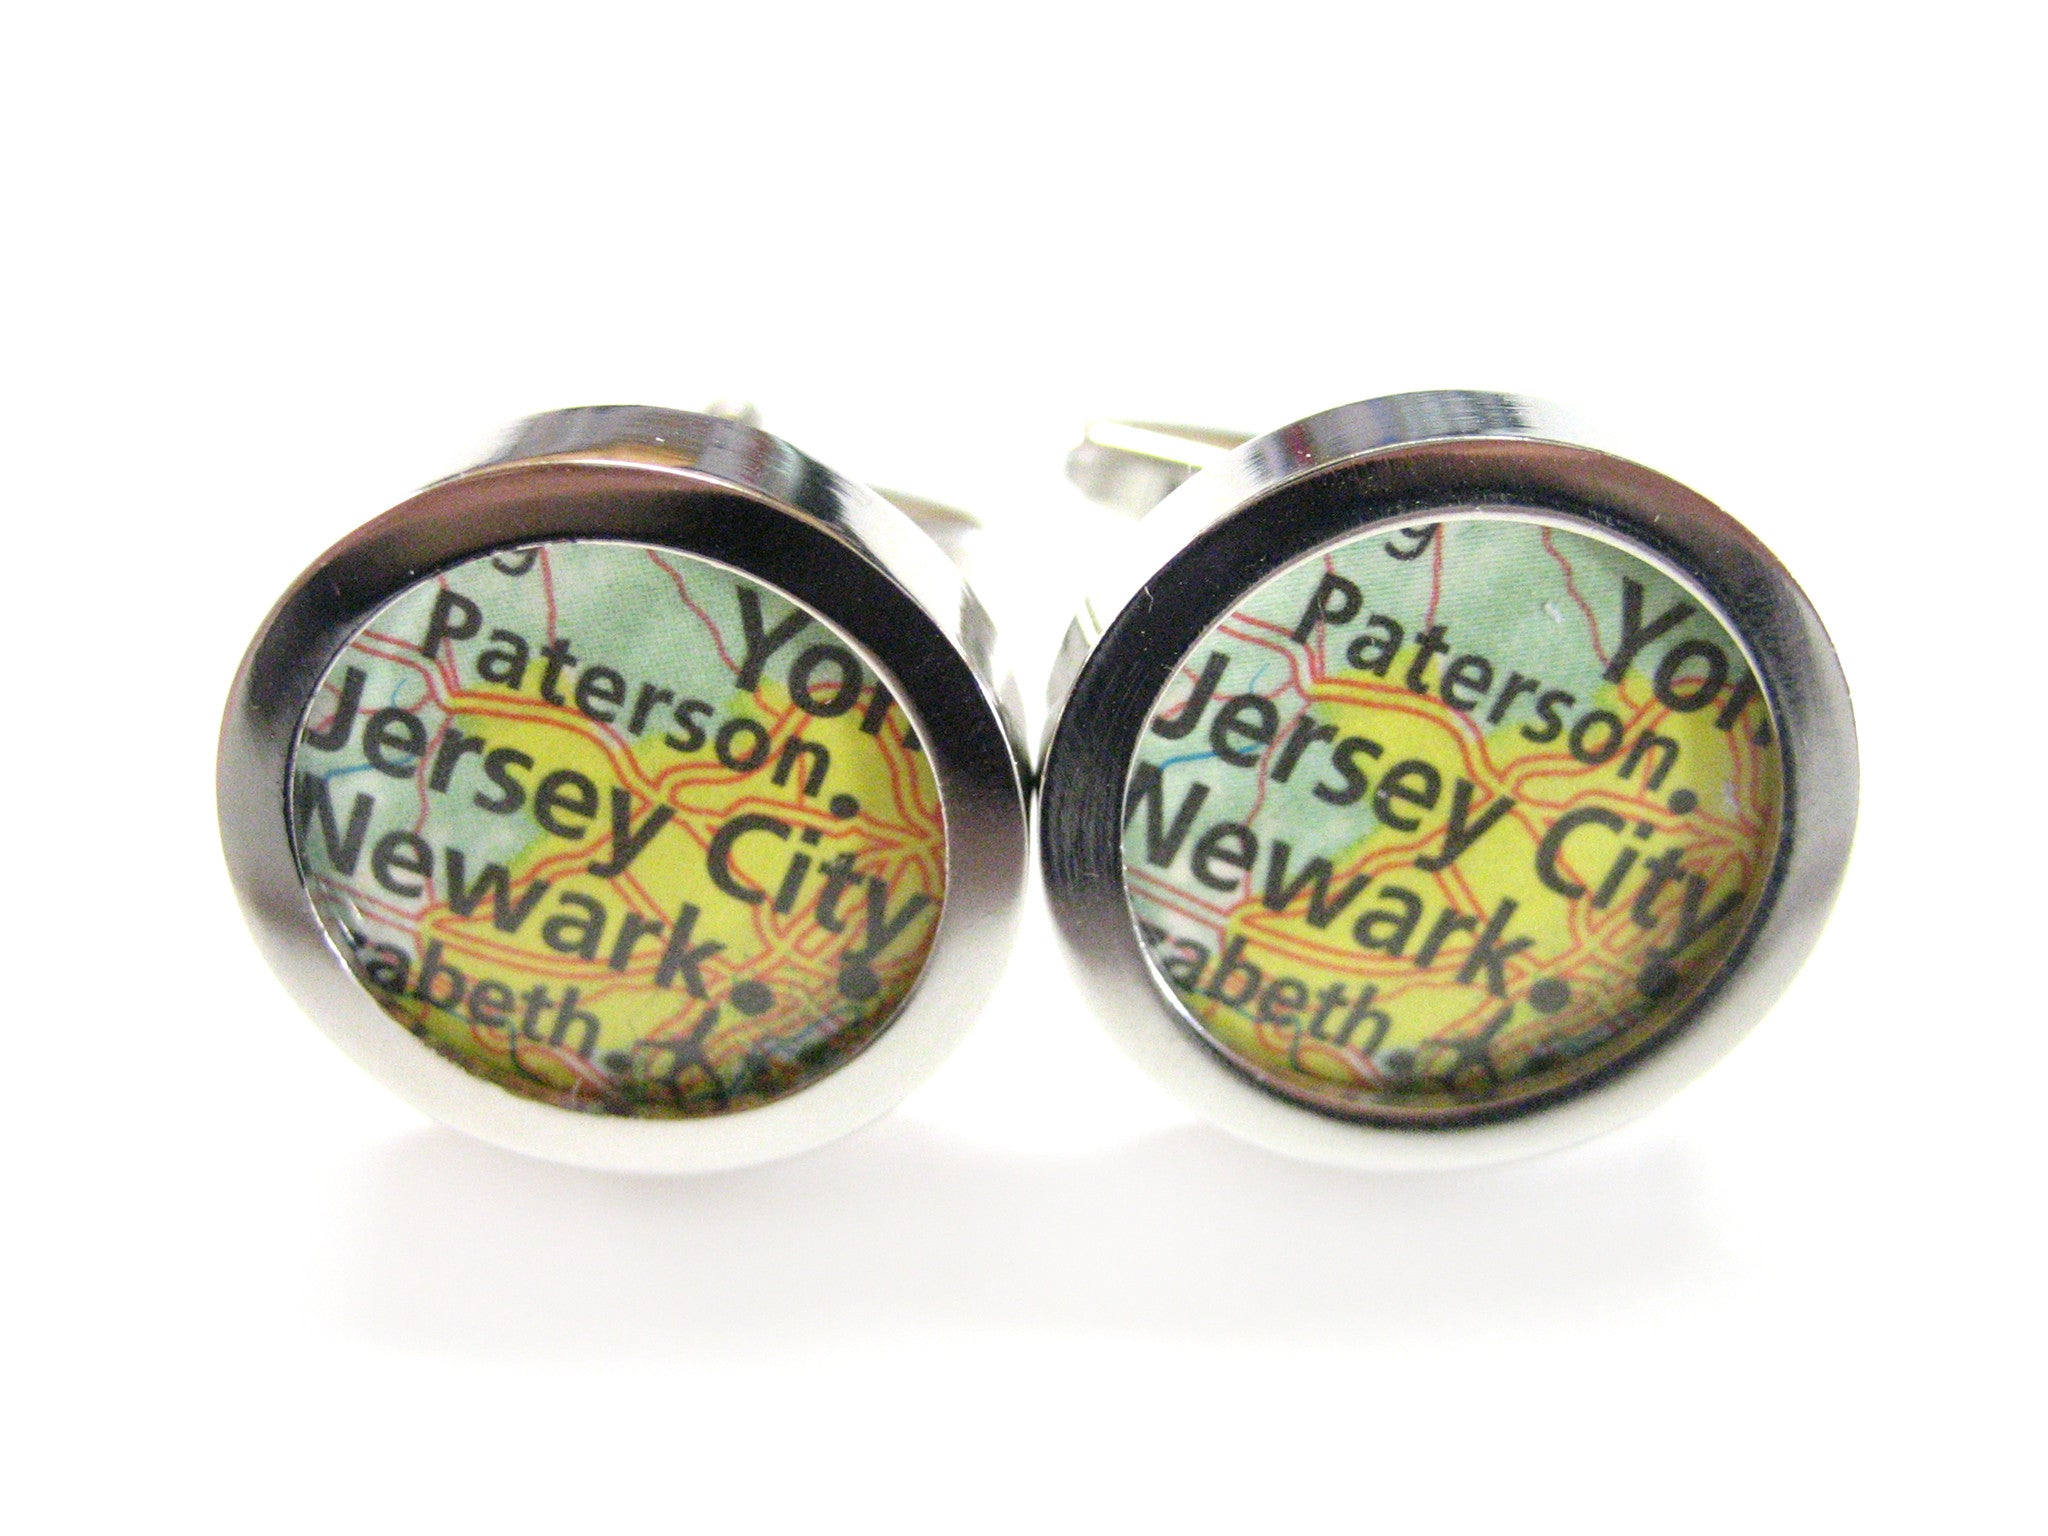 Jersey City New Jersey Map Cufflinks